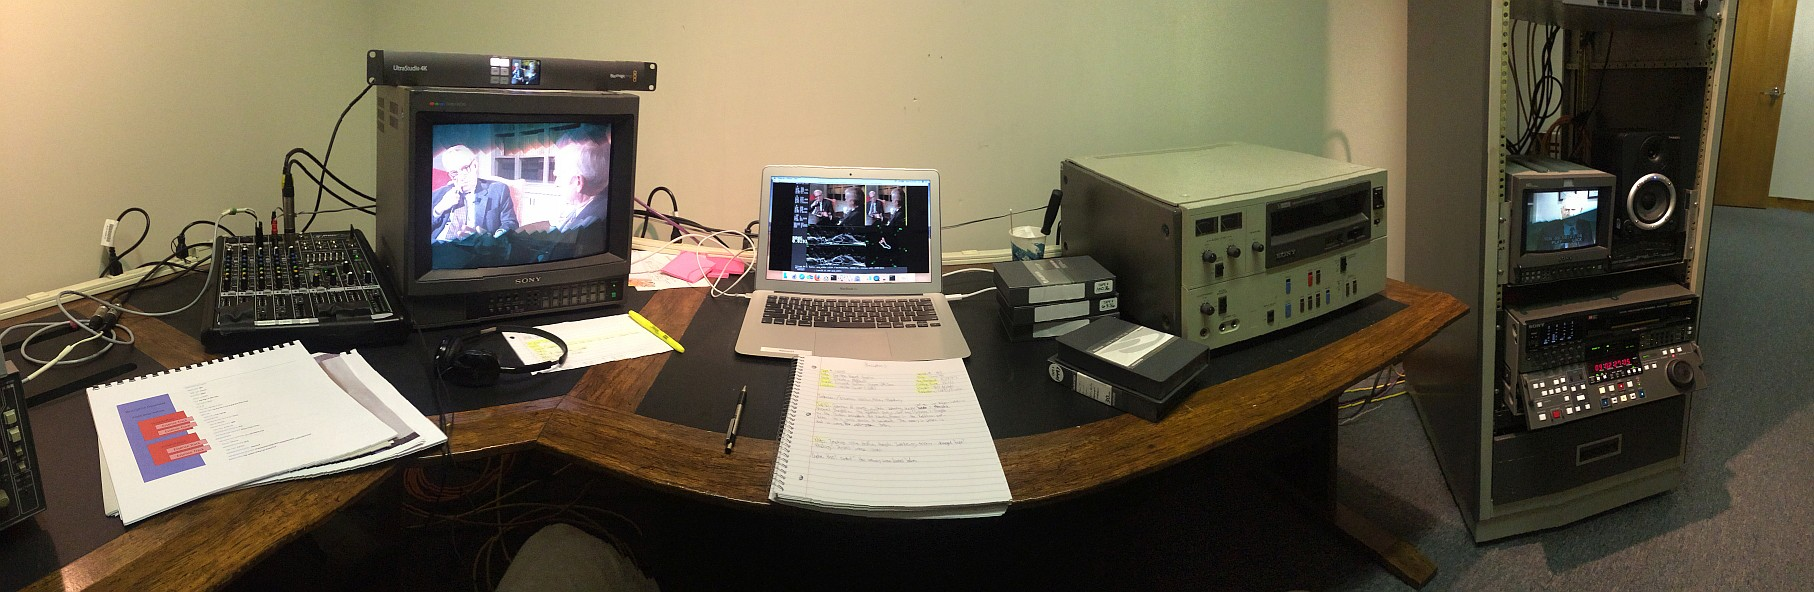 Transferring Knowledge: An Audio-Visual Digitization Internship